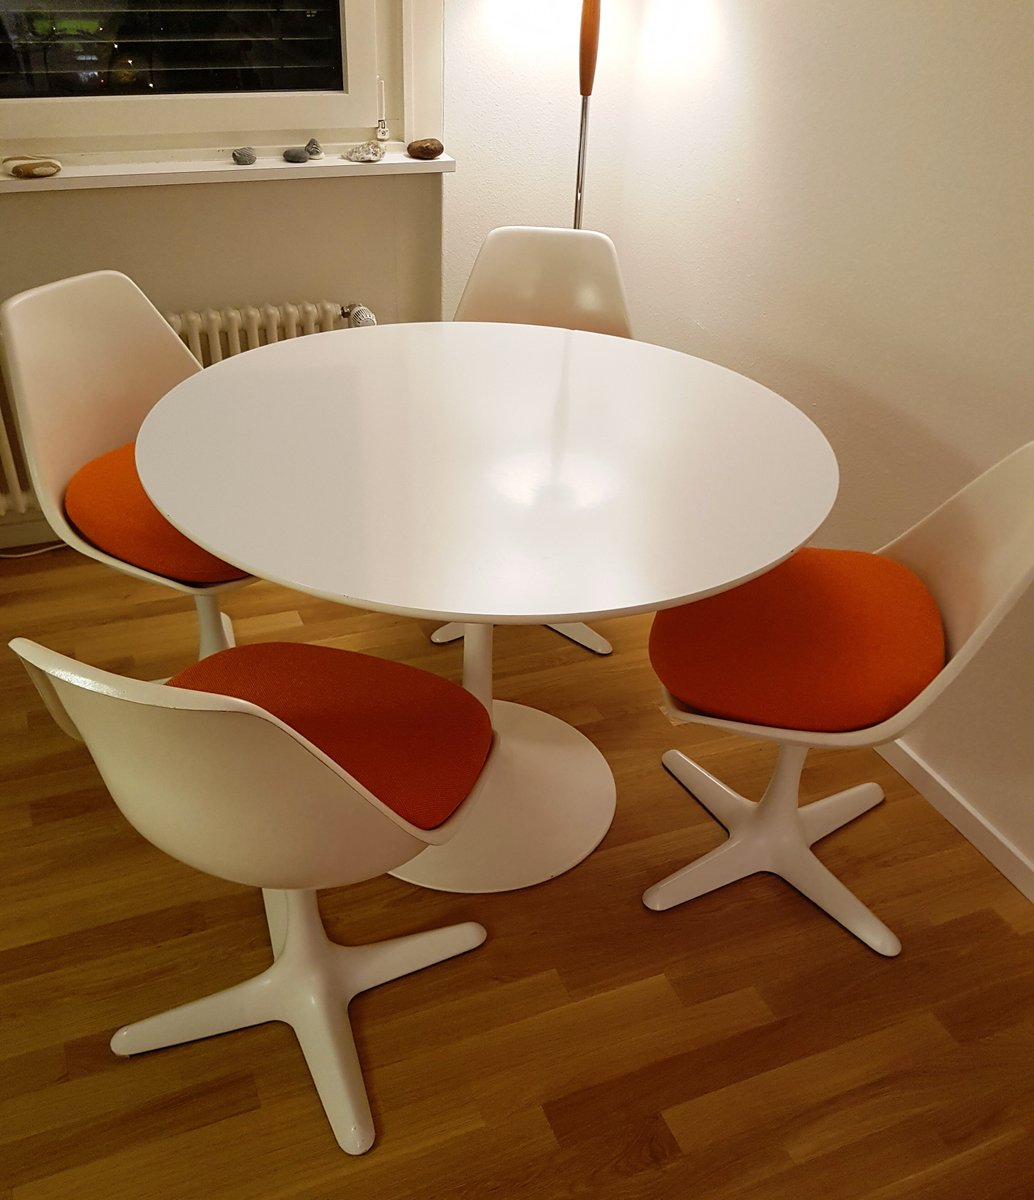 Perfect Vintage Tulip Table 4 Chairs By Maurice Burke For Arkana